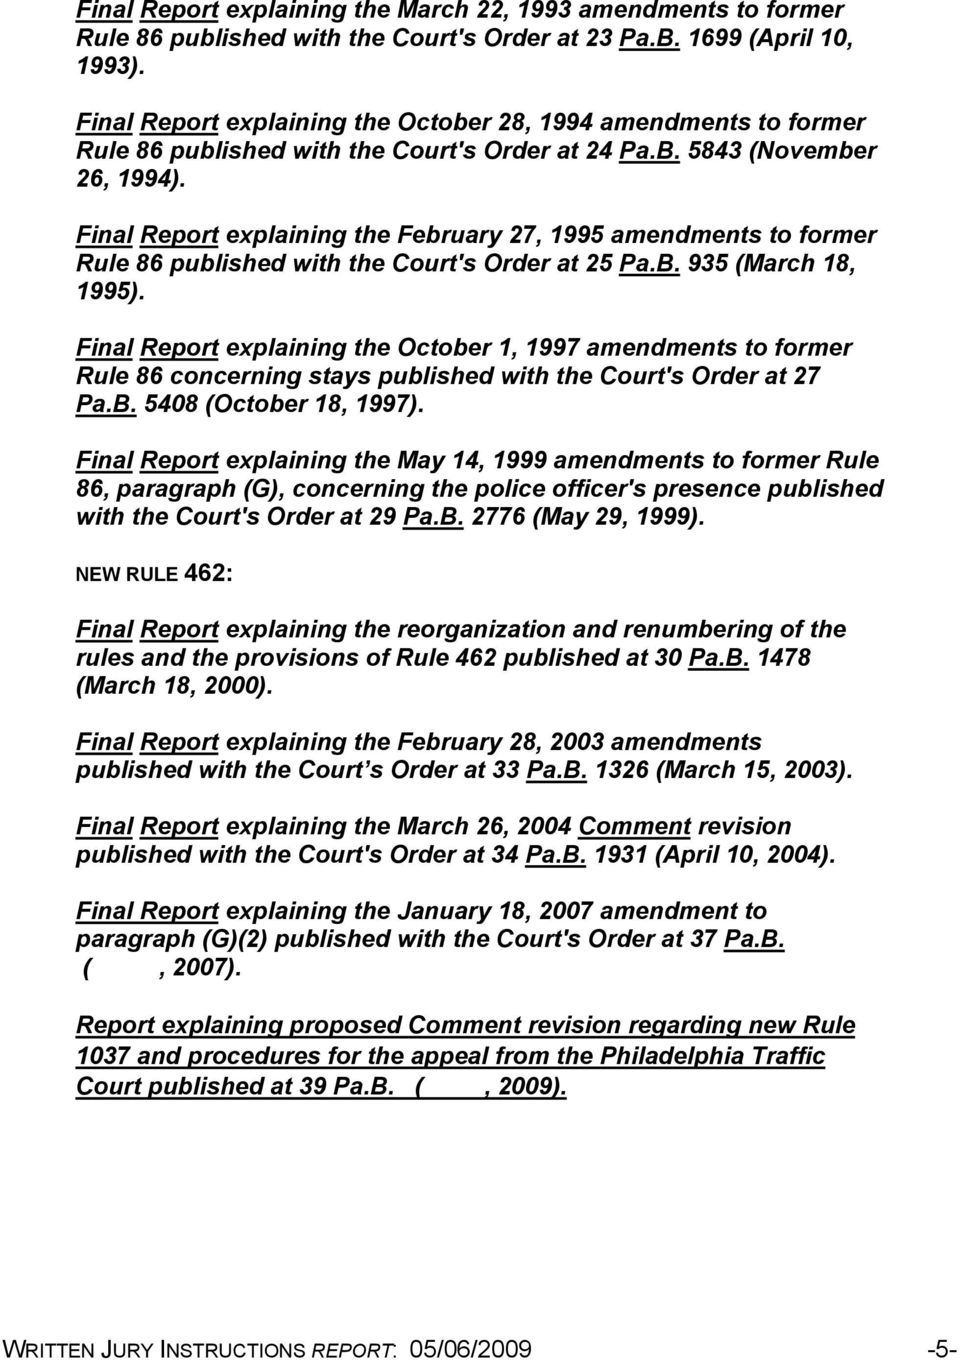 Final Report explaining the February 27, 1995 amendments to former Rule 86 published with the Court's Order at 25 Pa.B. 935 (March 18, 1995).